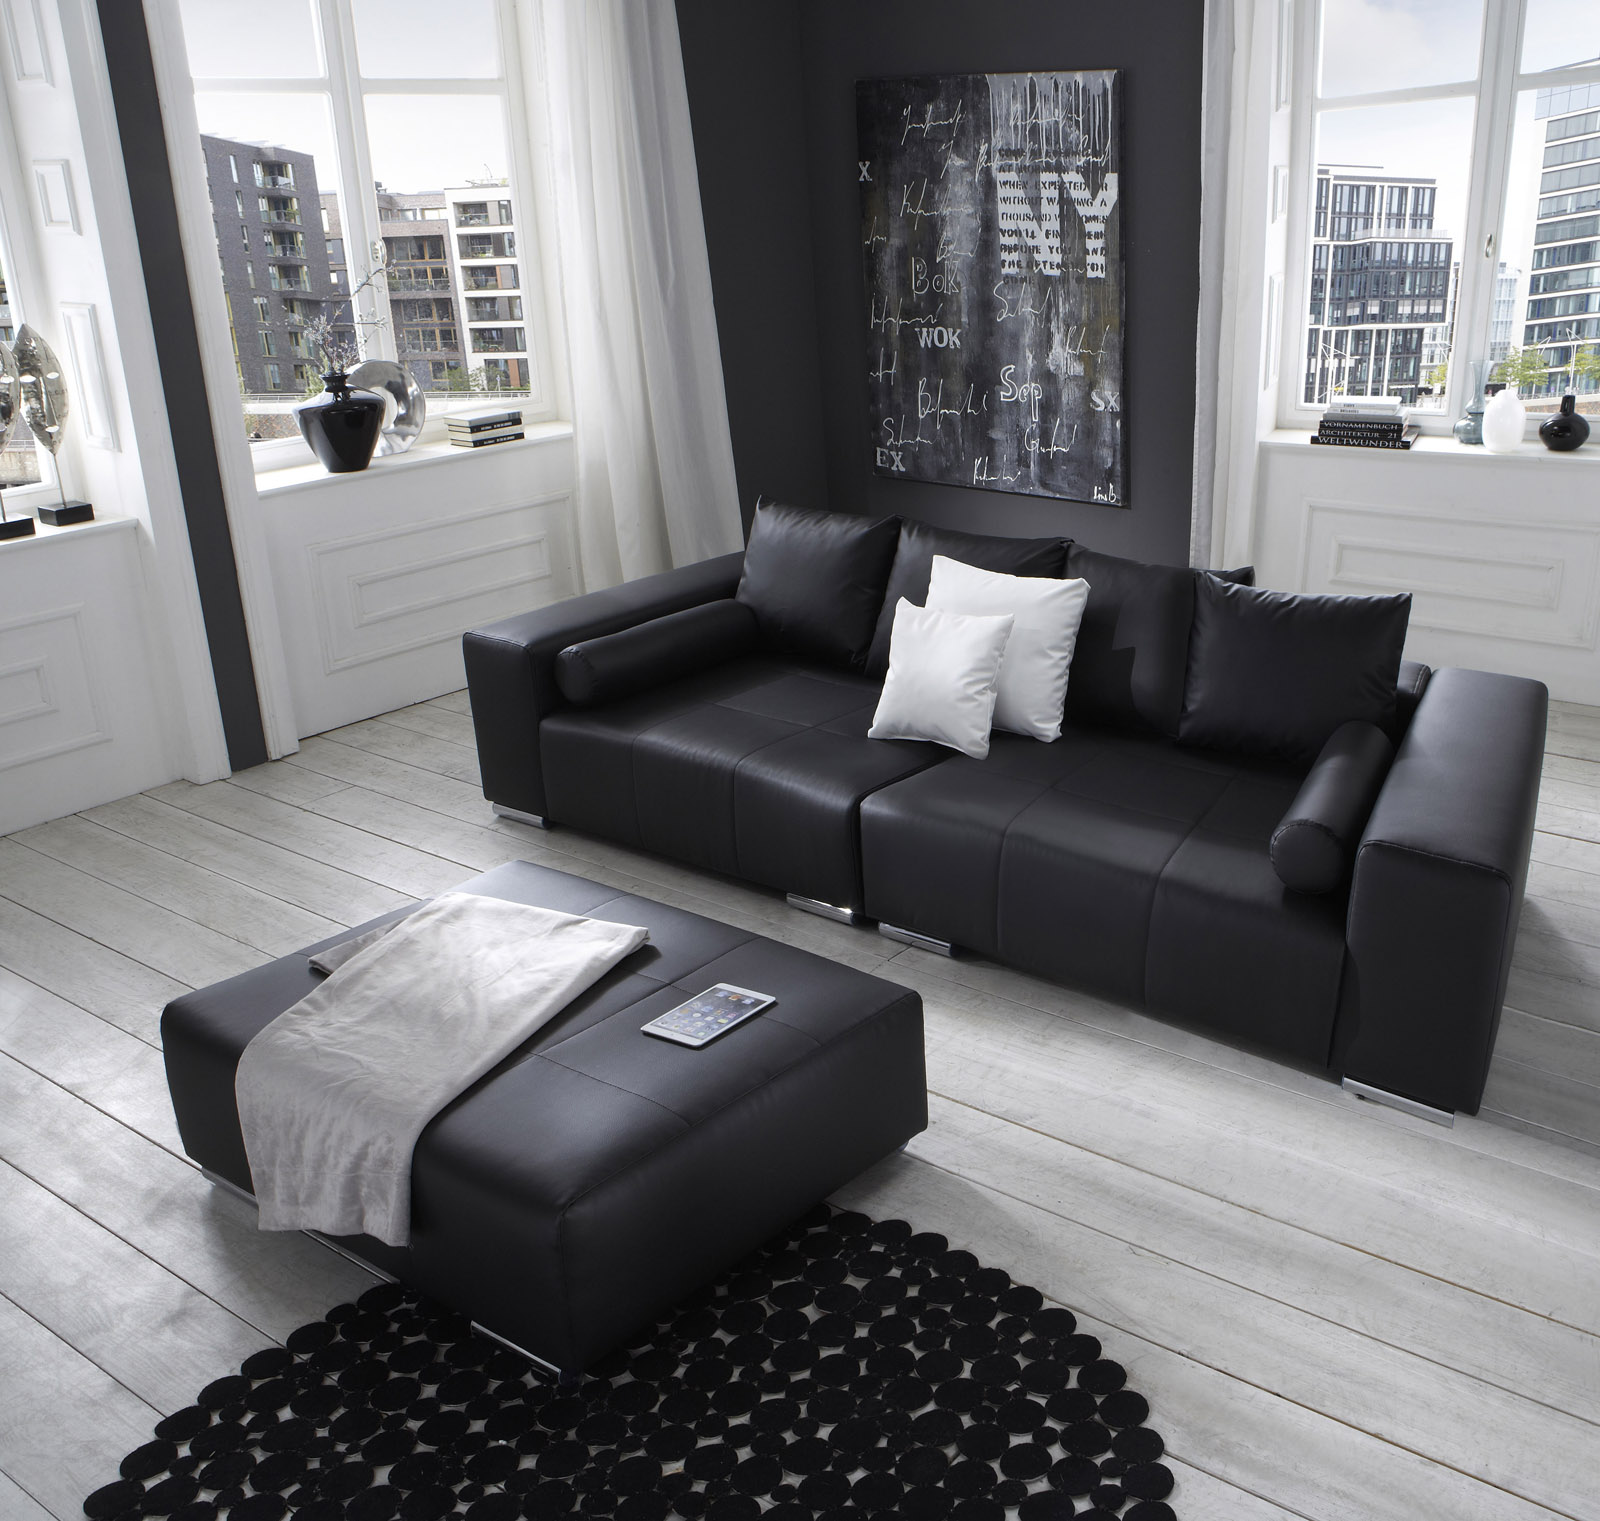 big sofa 260 cm size cm l x cm d x cm h seater size cm l x cm d x cm h seater size cm l x cm d. Black Bedroom Furniture Sets. Home Design Ideas